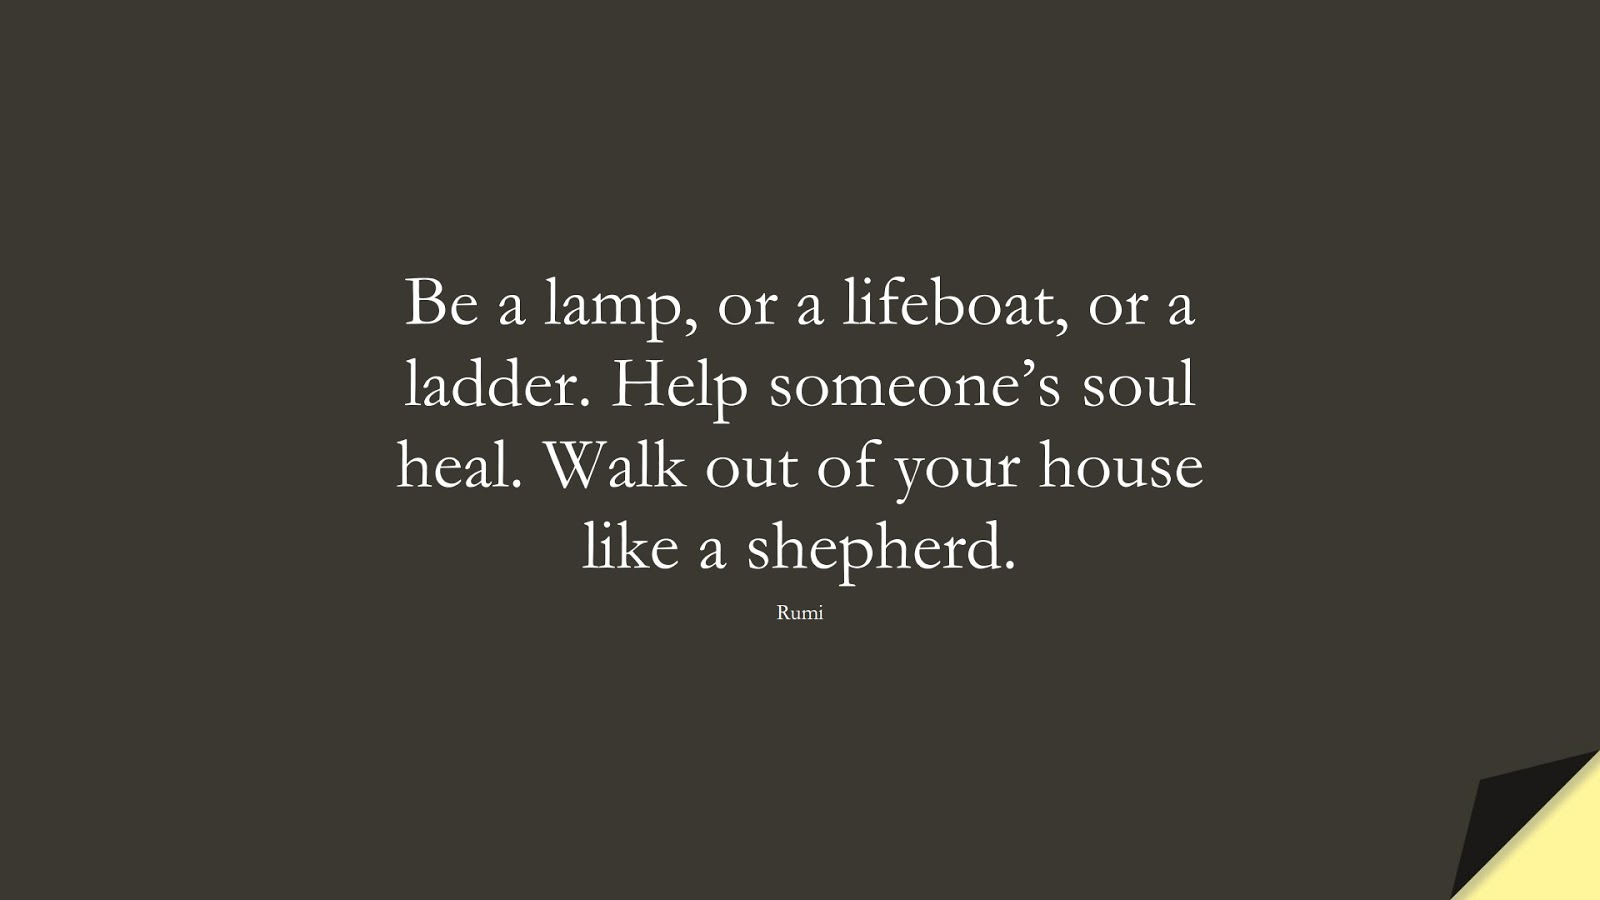 Be a lamp, or a lifeboat, or a ladder. Help someone's soul heal. Walk out of your house like a shepherd. (Rumi);  #RumiQuotes